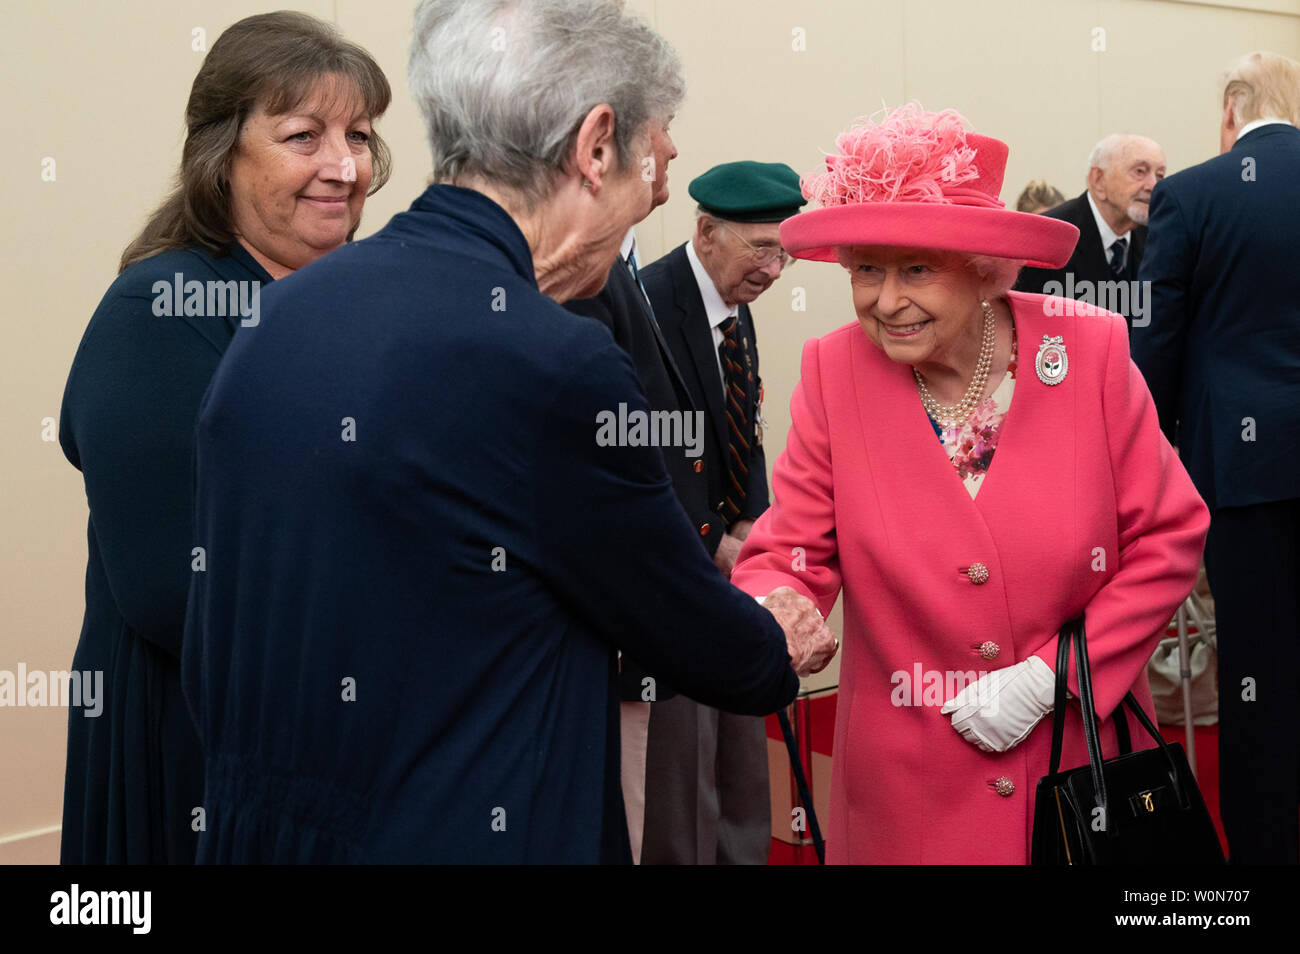 Britain's Queen Elizabeth II, joined by President Donald J. Trump, meets with World War II veterans and their families during a D-Day National Commemorative Event on June 5, 2019, at the Southsea Common in Portsmouth, England. White House Photo by Andrea Hanks/UPI Stock Photo